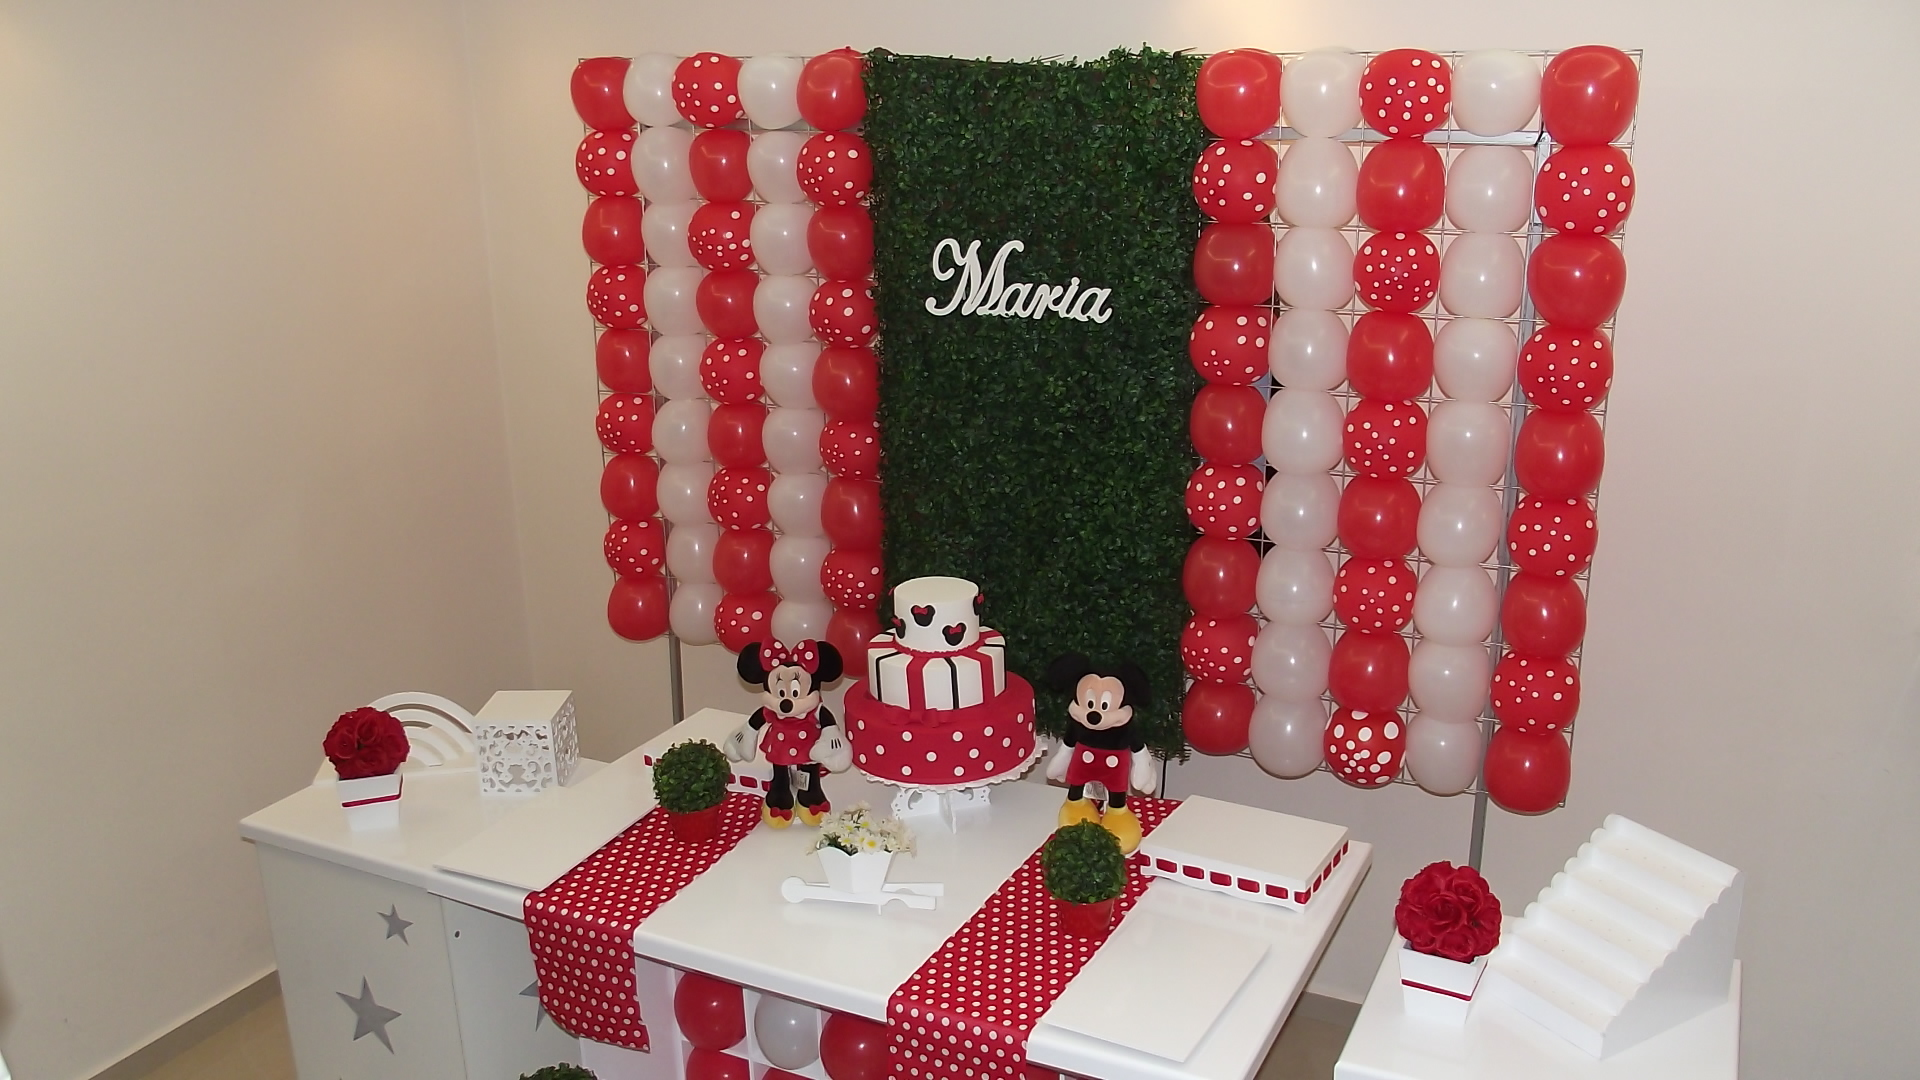 minnie vermelha decoracao clean minnie vermelha decoracao clean minnie